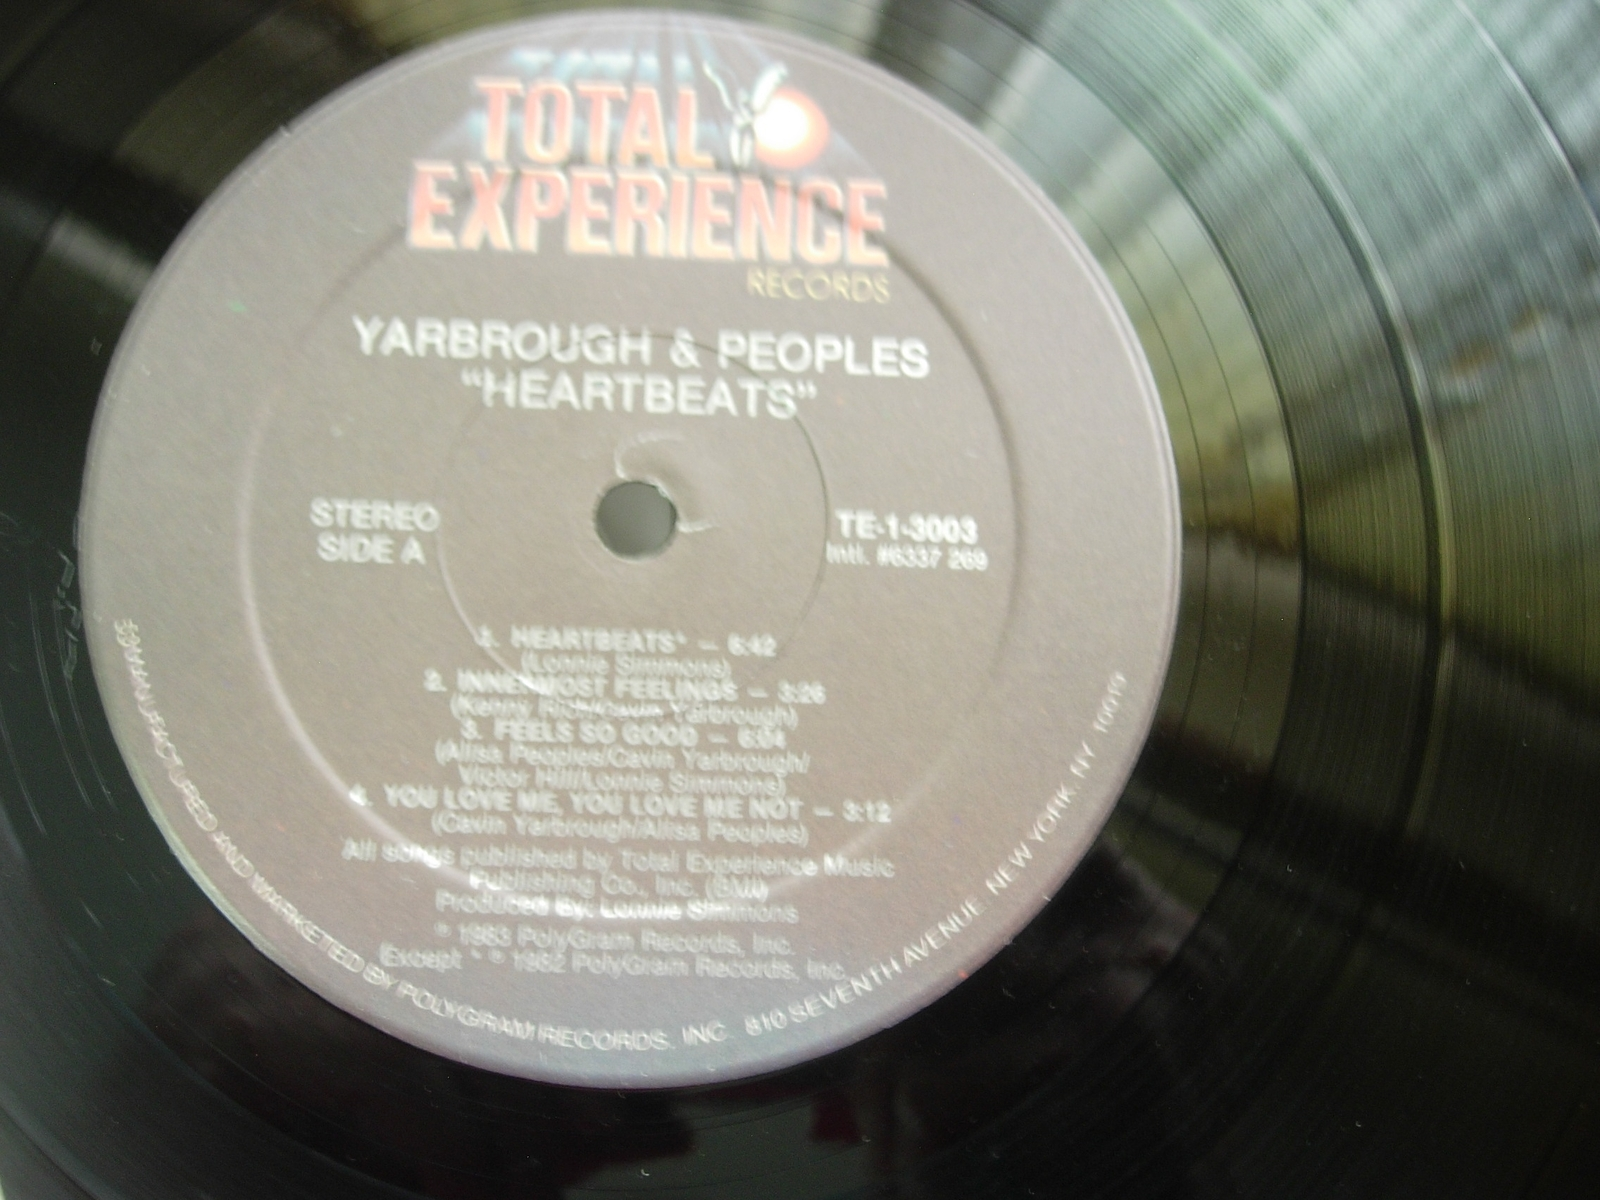 Yarbrough & Peoples - Heartbeats - Total Experience TE-1-3003